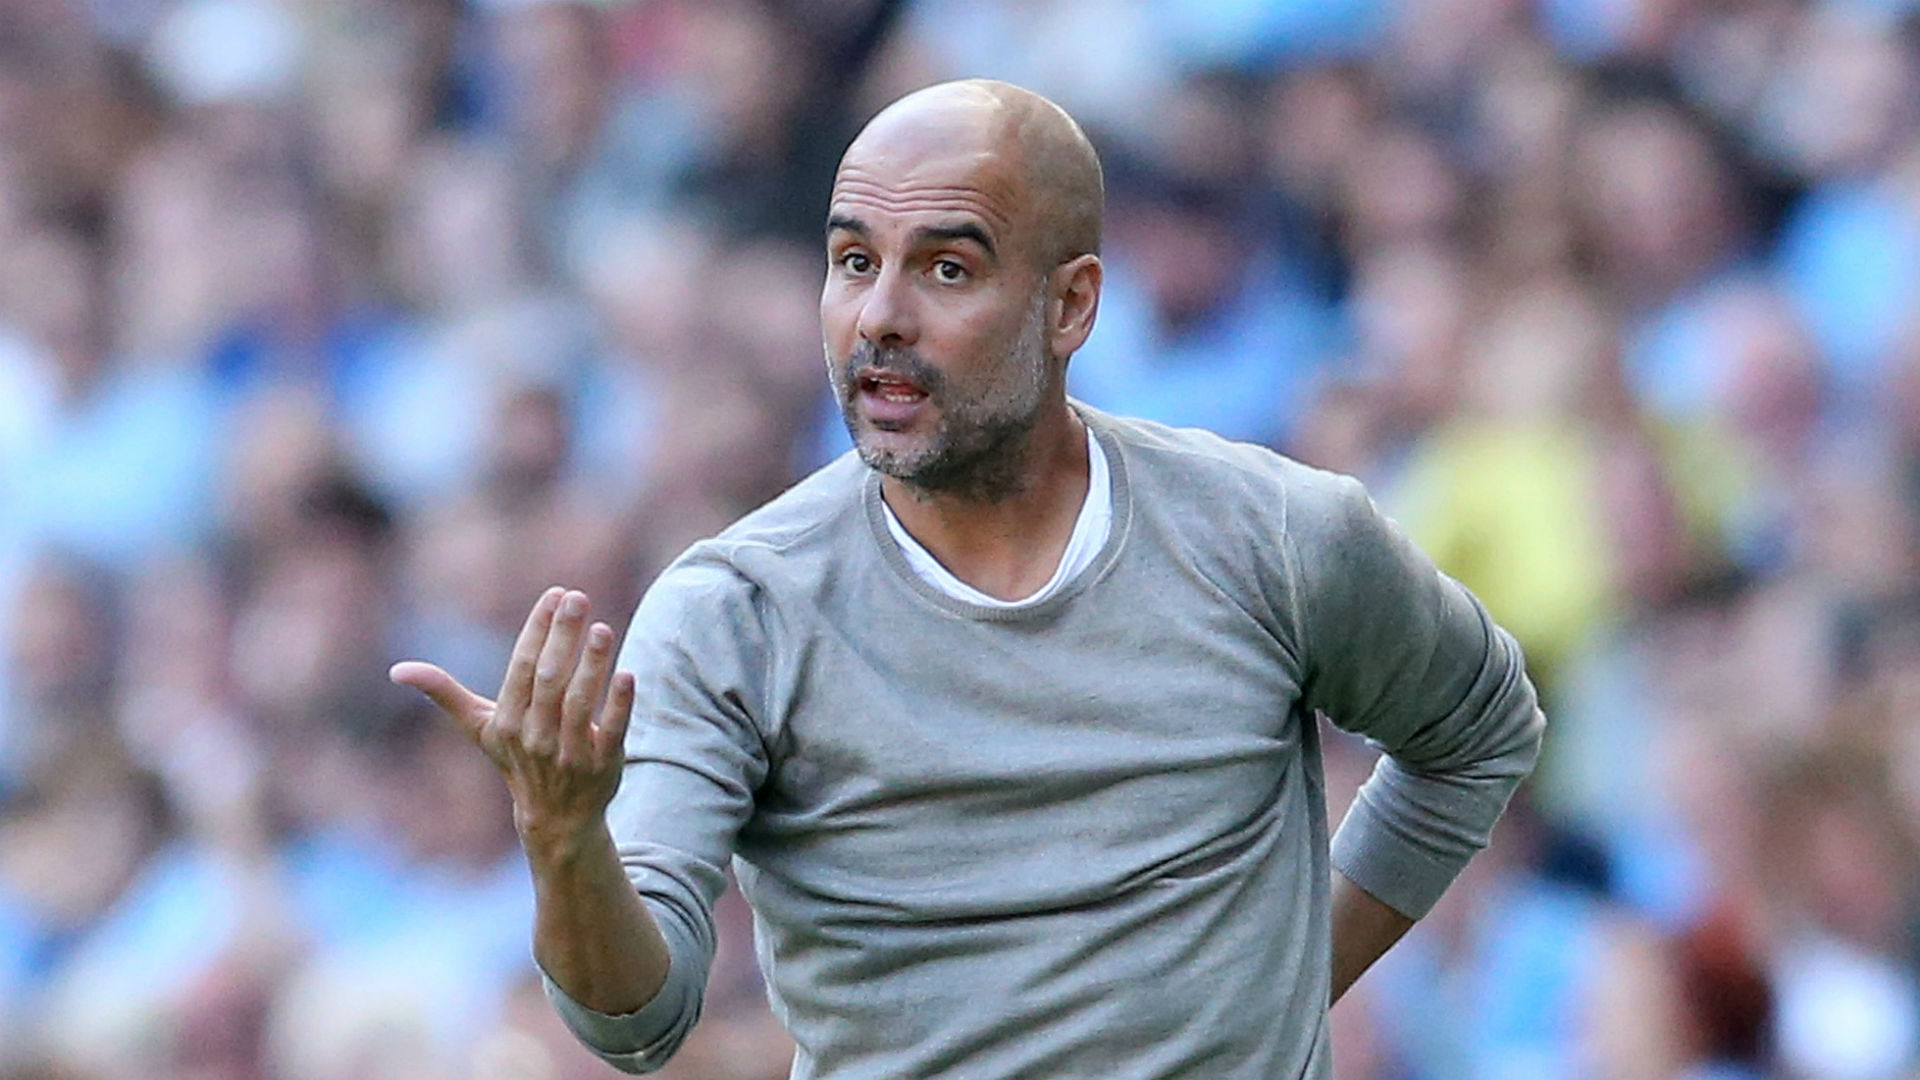 Man City players have nothing to prove, insists Guardiola